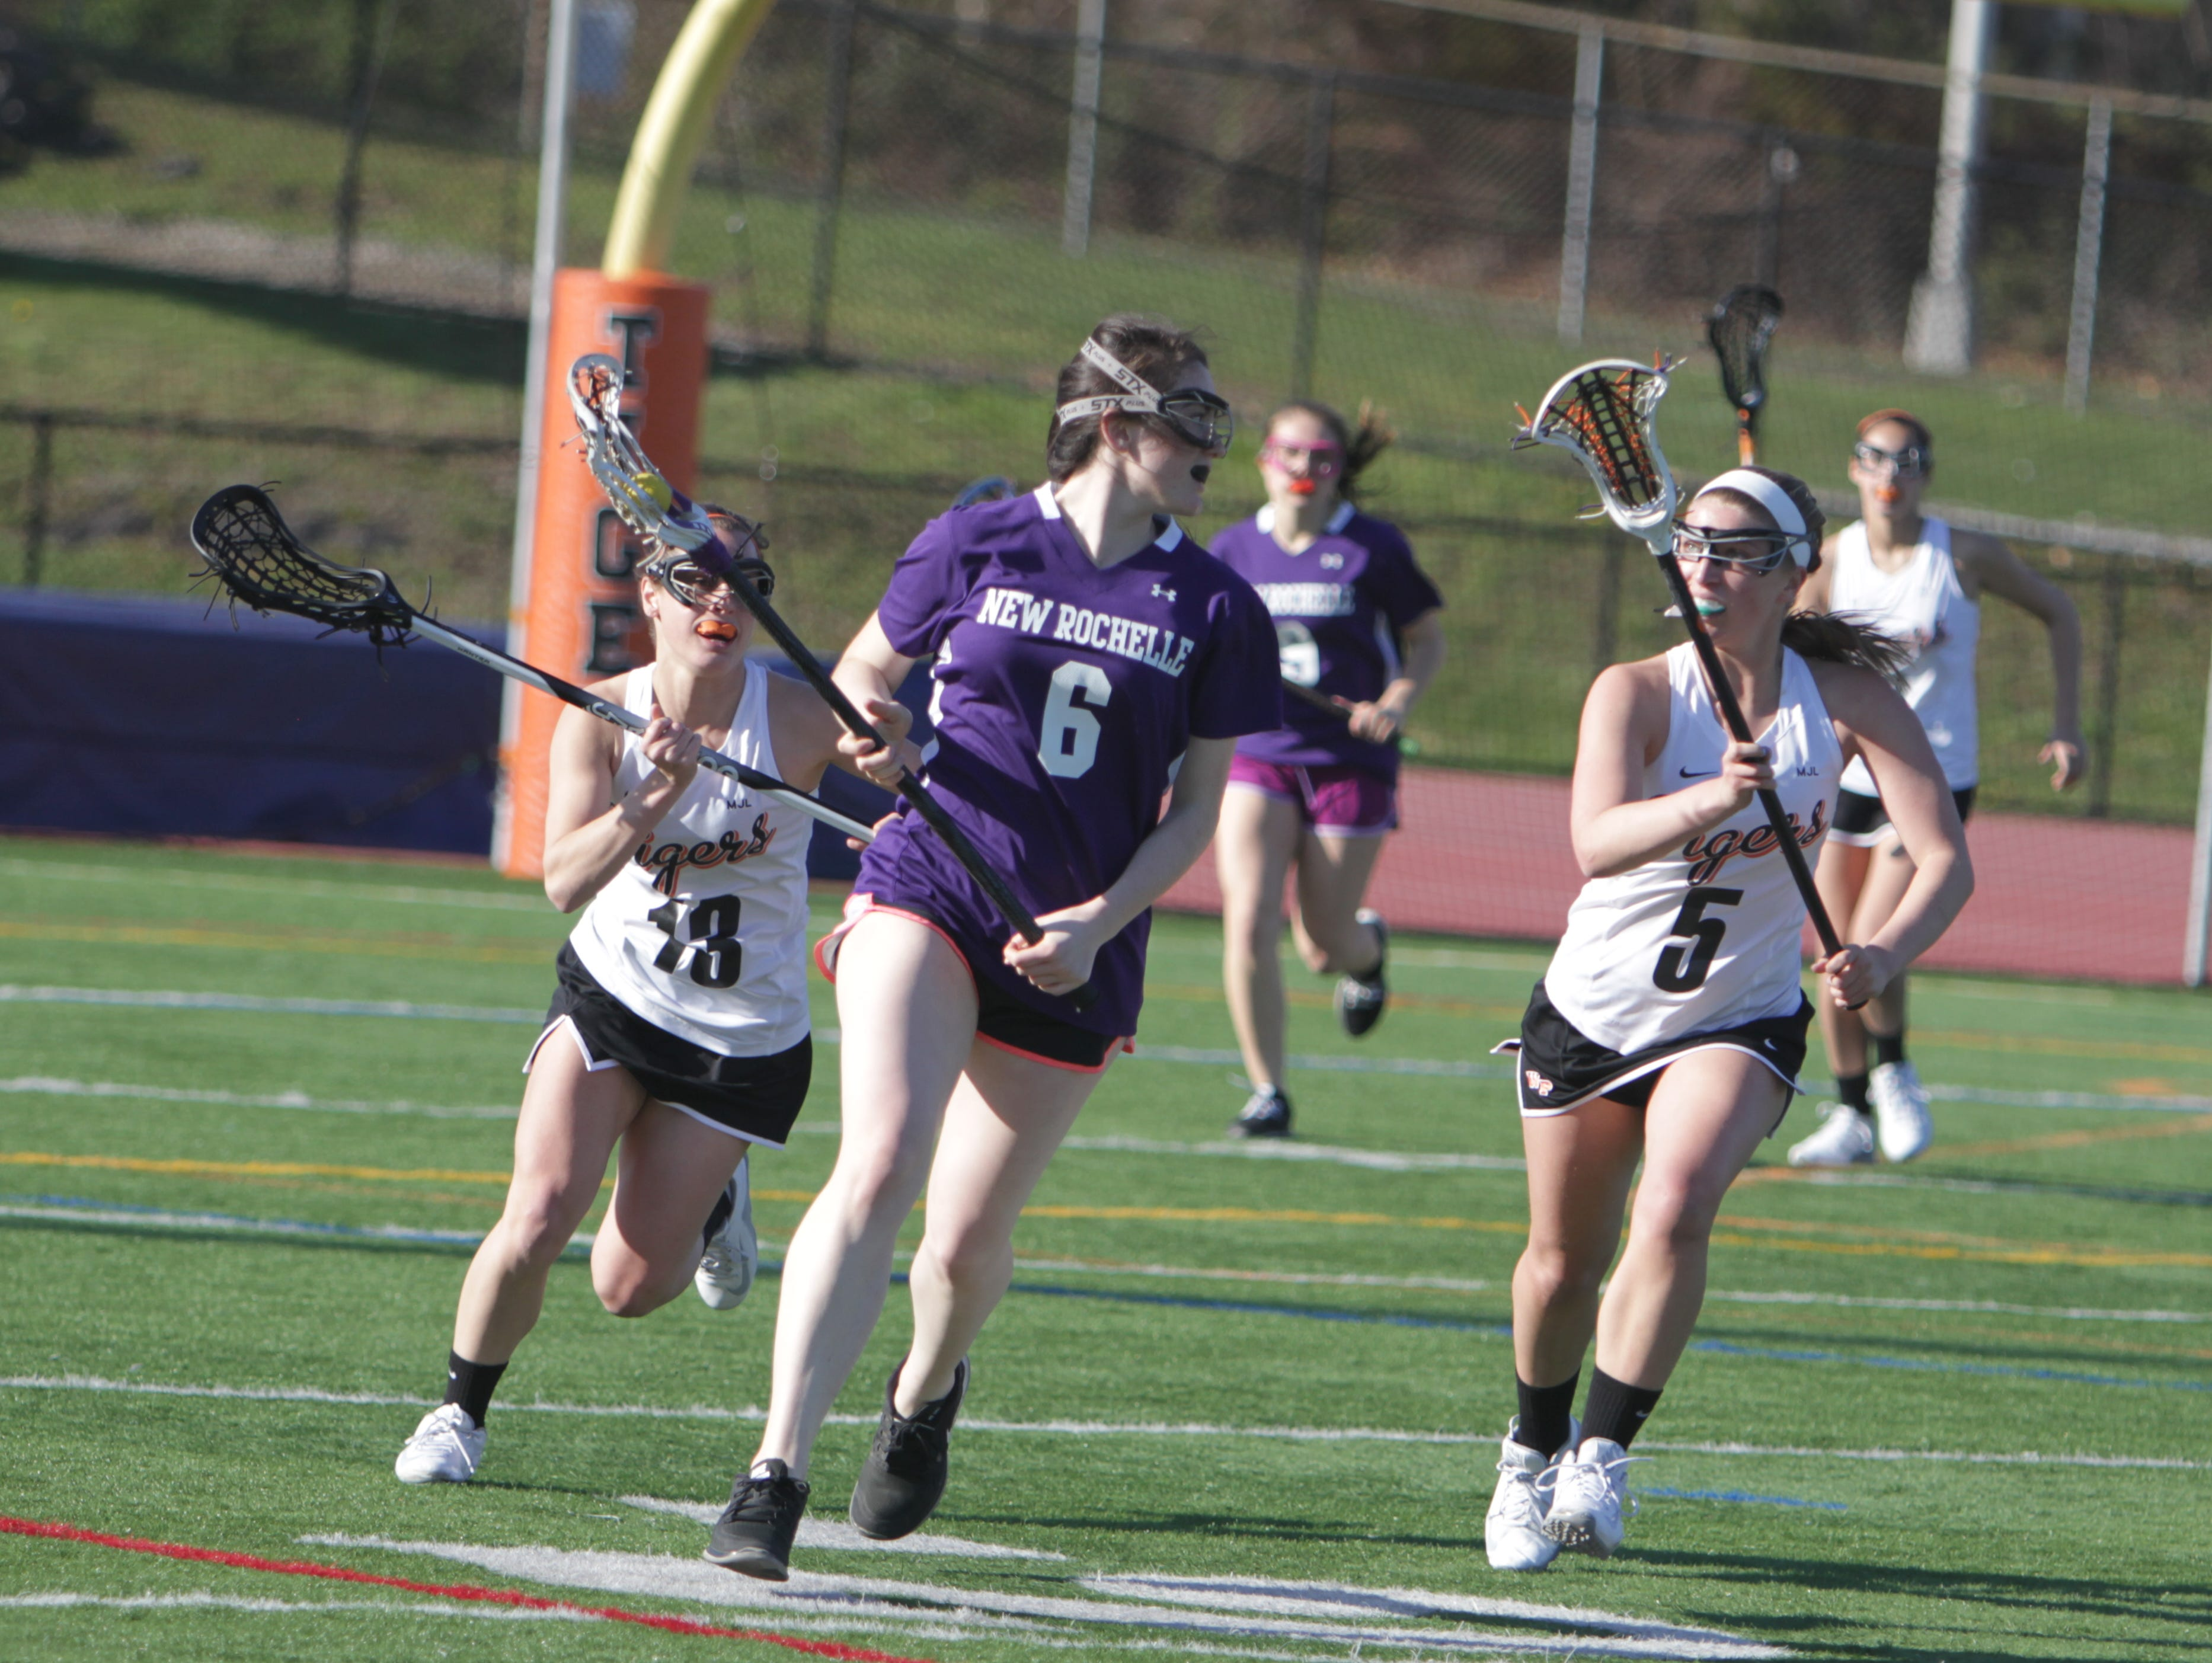 New Rochelle's Bella Dente is defended by White Plains' Amanda Broderick (13) and Katie Avezzano during a Section 1 girls lacrosse game between New Rochelle and White Plains at White Plains High School on Wednesday, April 13th, 2016. White Plains won 11-6.